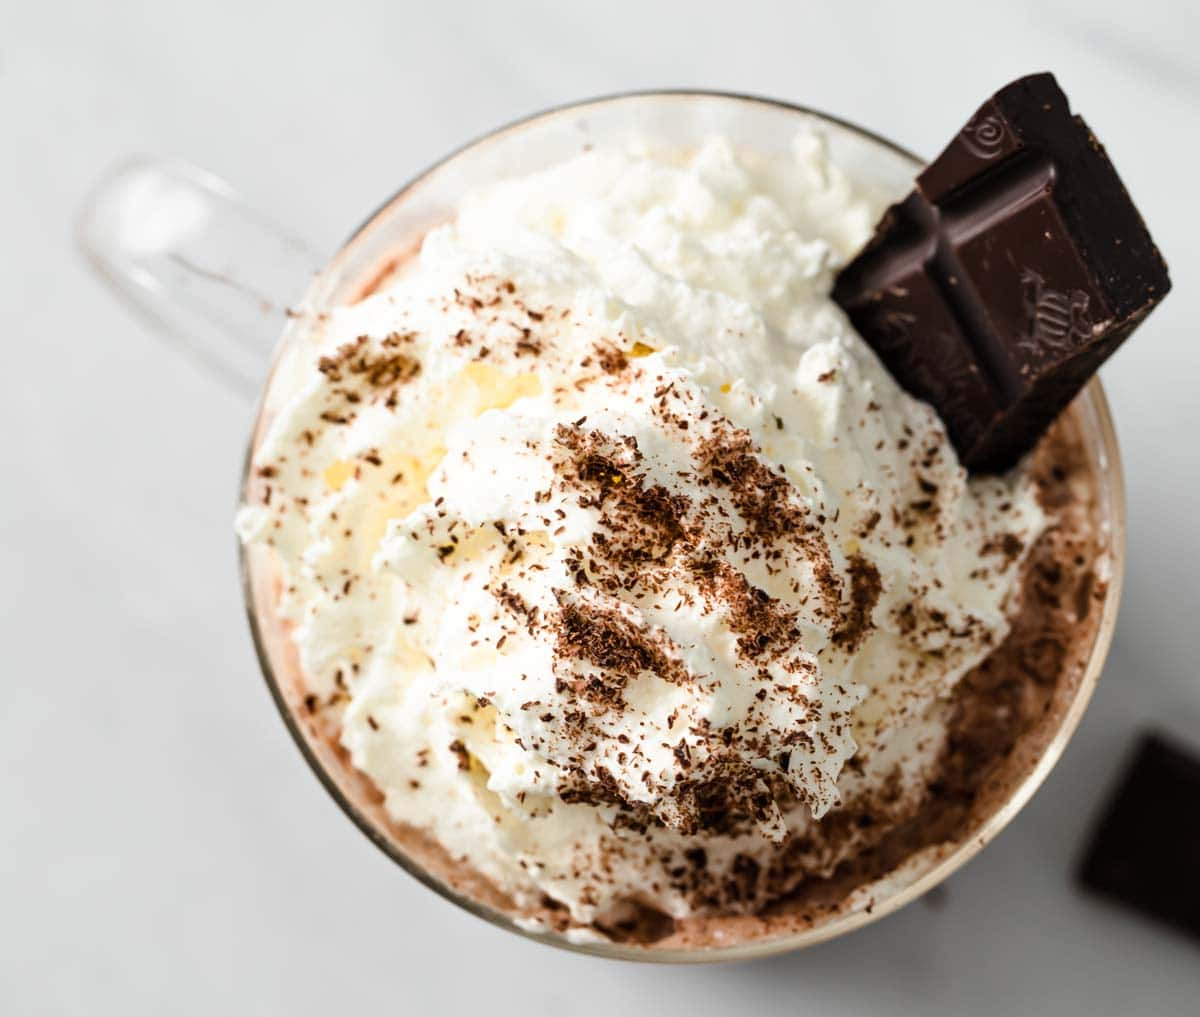 a square of dark chocolate in whipped cream decorating a hot chocolate